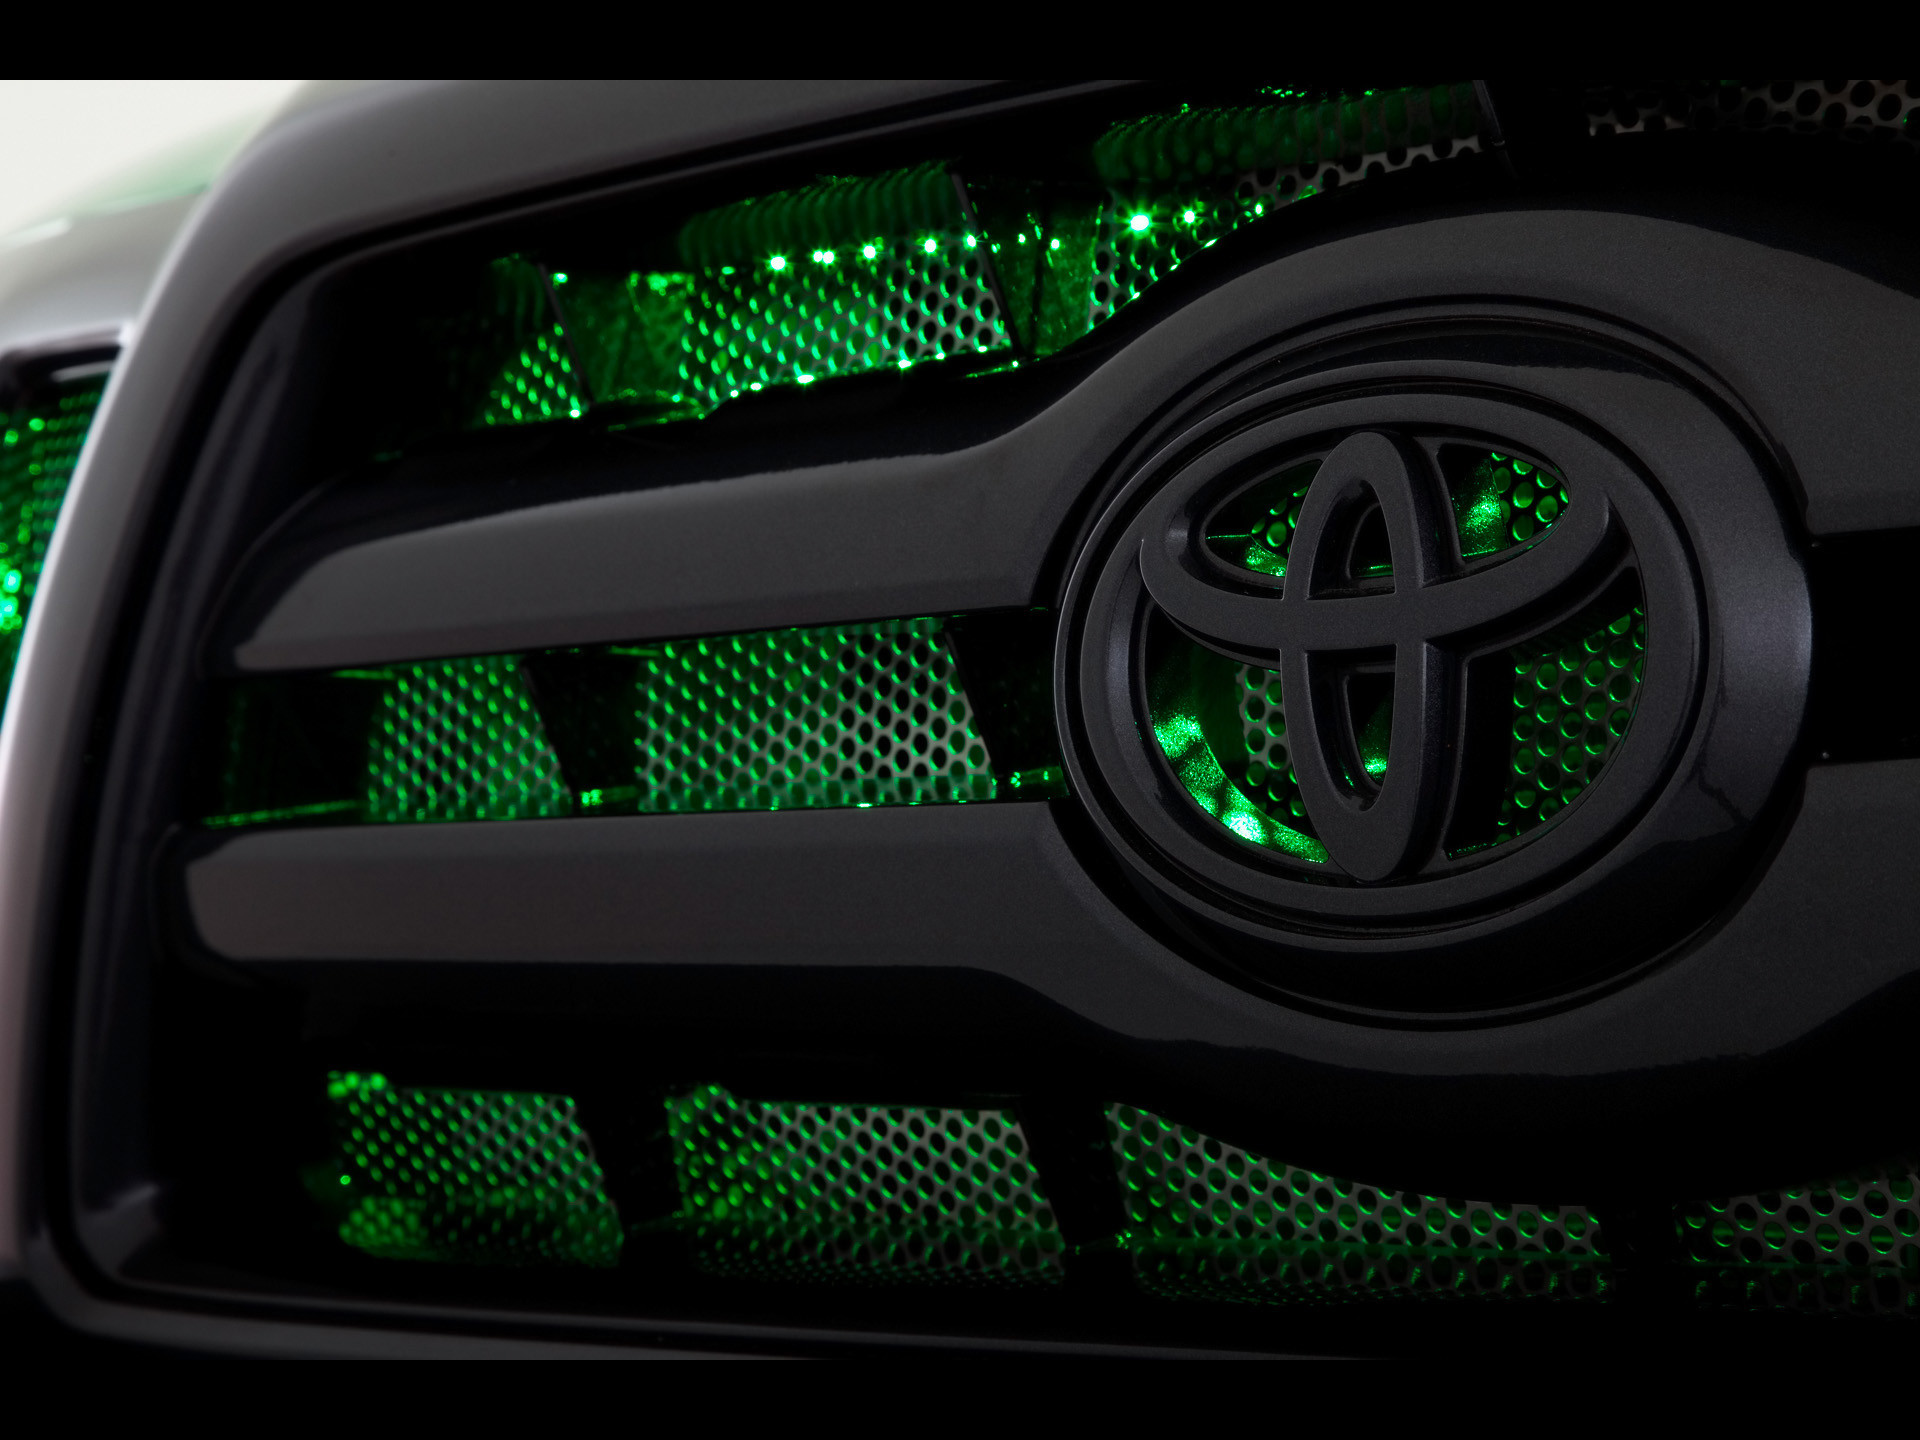 1920x1440 2009 Toyota Tacoma Atg Grille Wallpaper